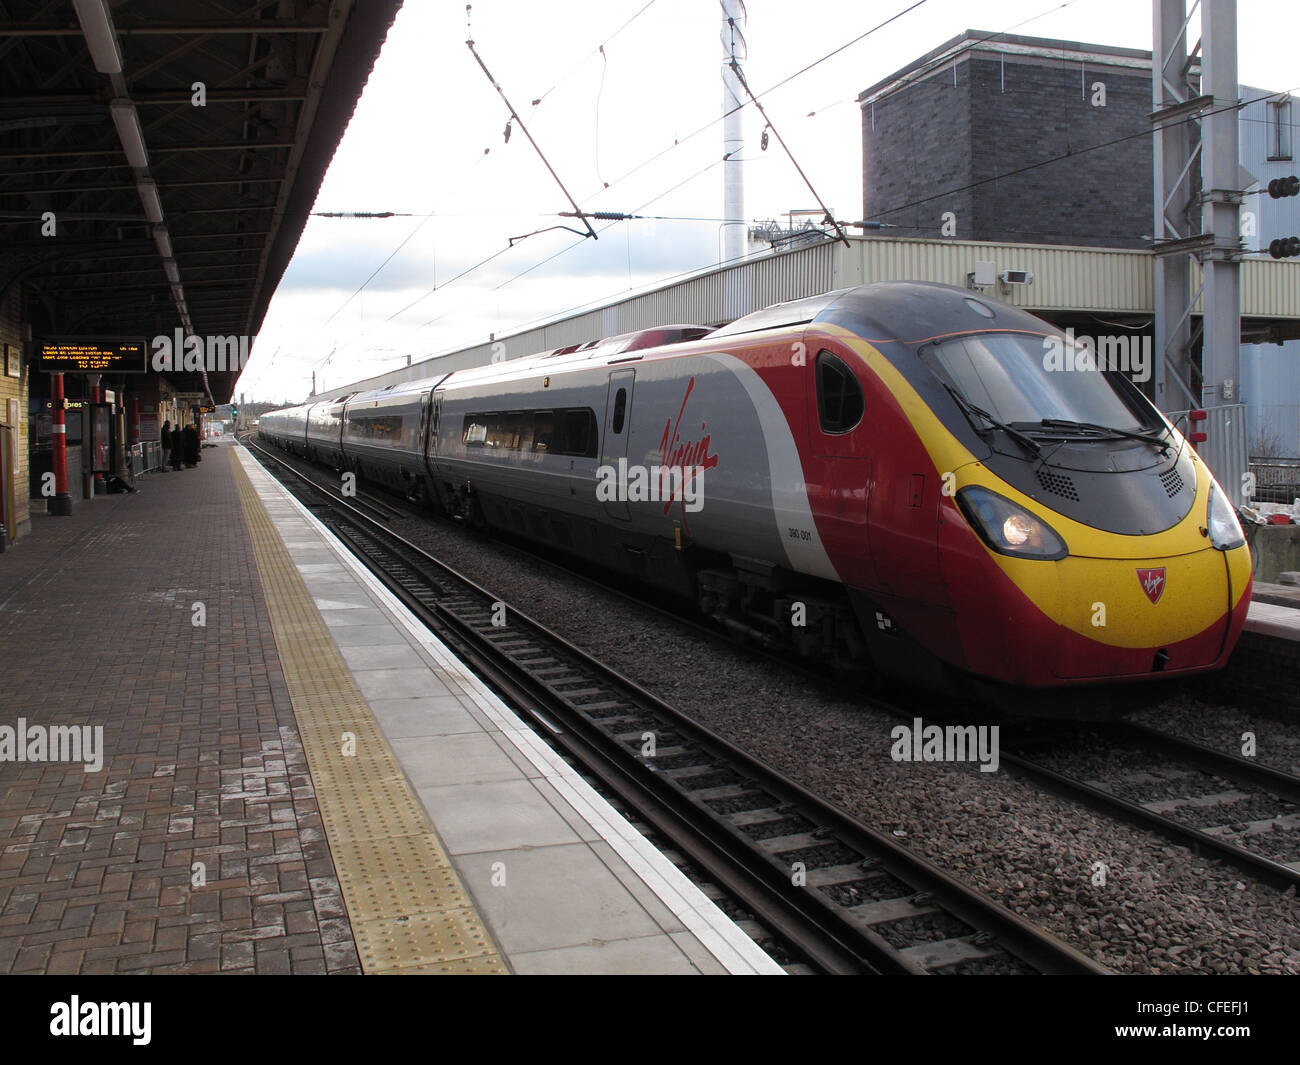 Virgin Voyager intercity train arrives at Warrington Bank Quay Railway Station. Looking south. - Stock Image